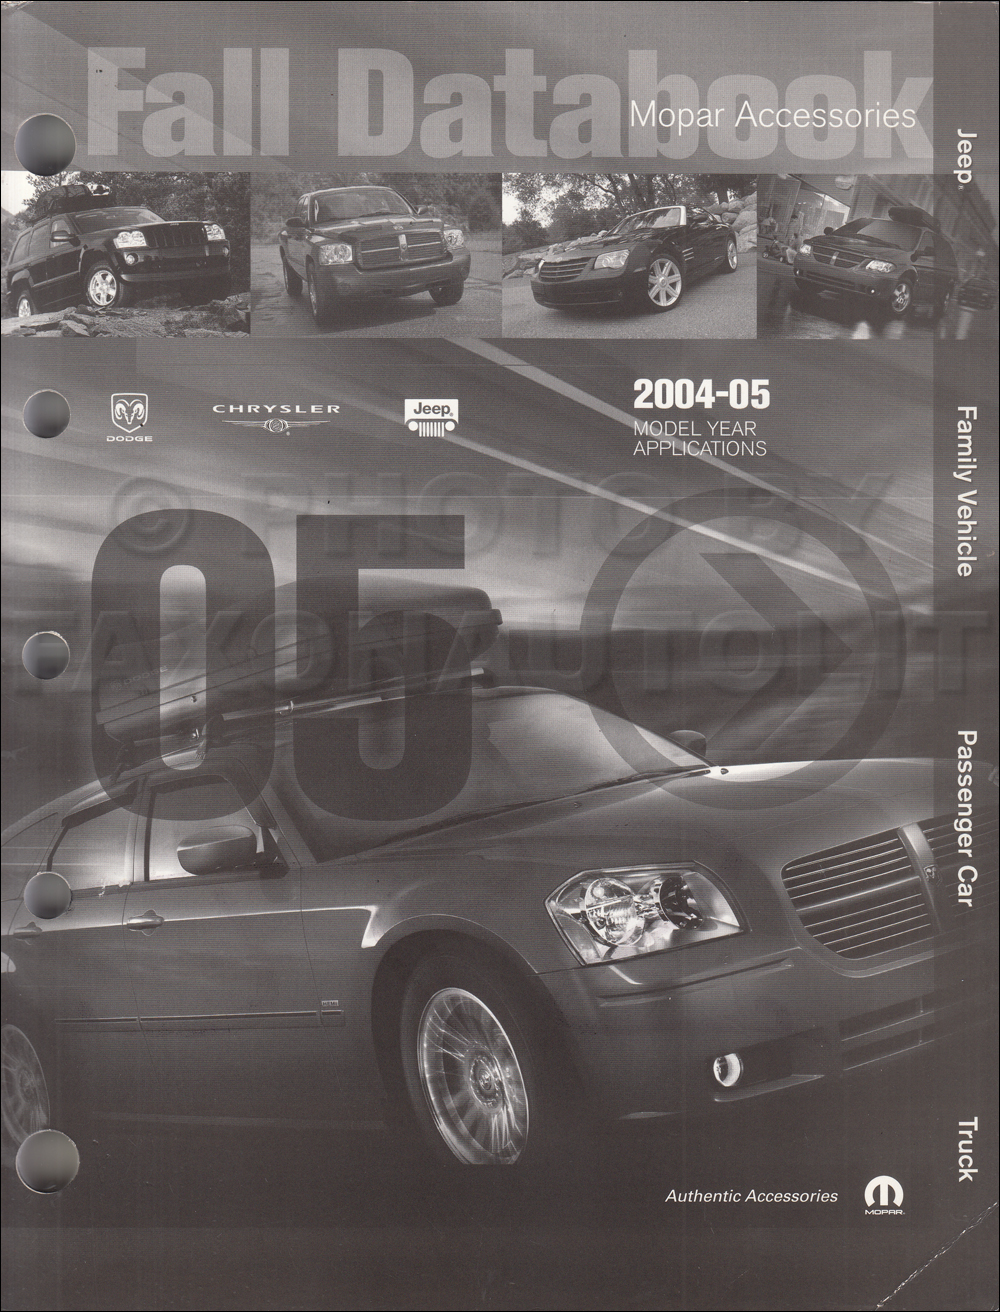 2004-2005 MoPar Accessories Databook Original Fall